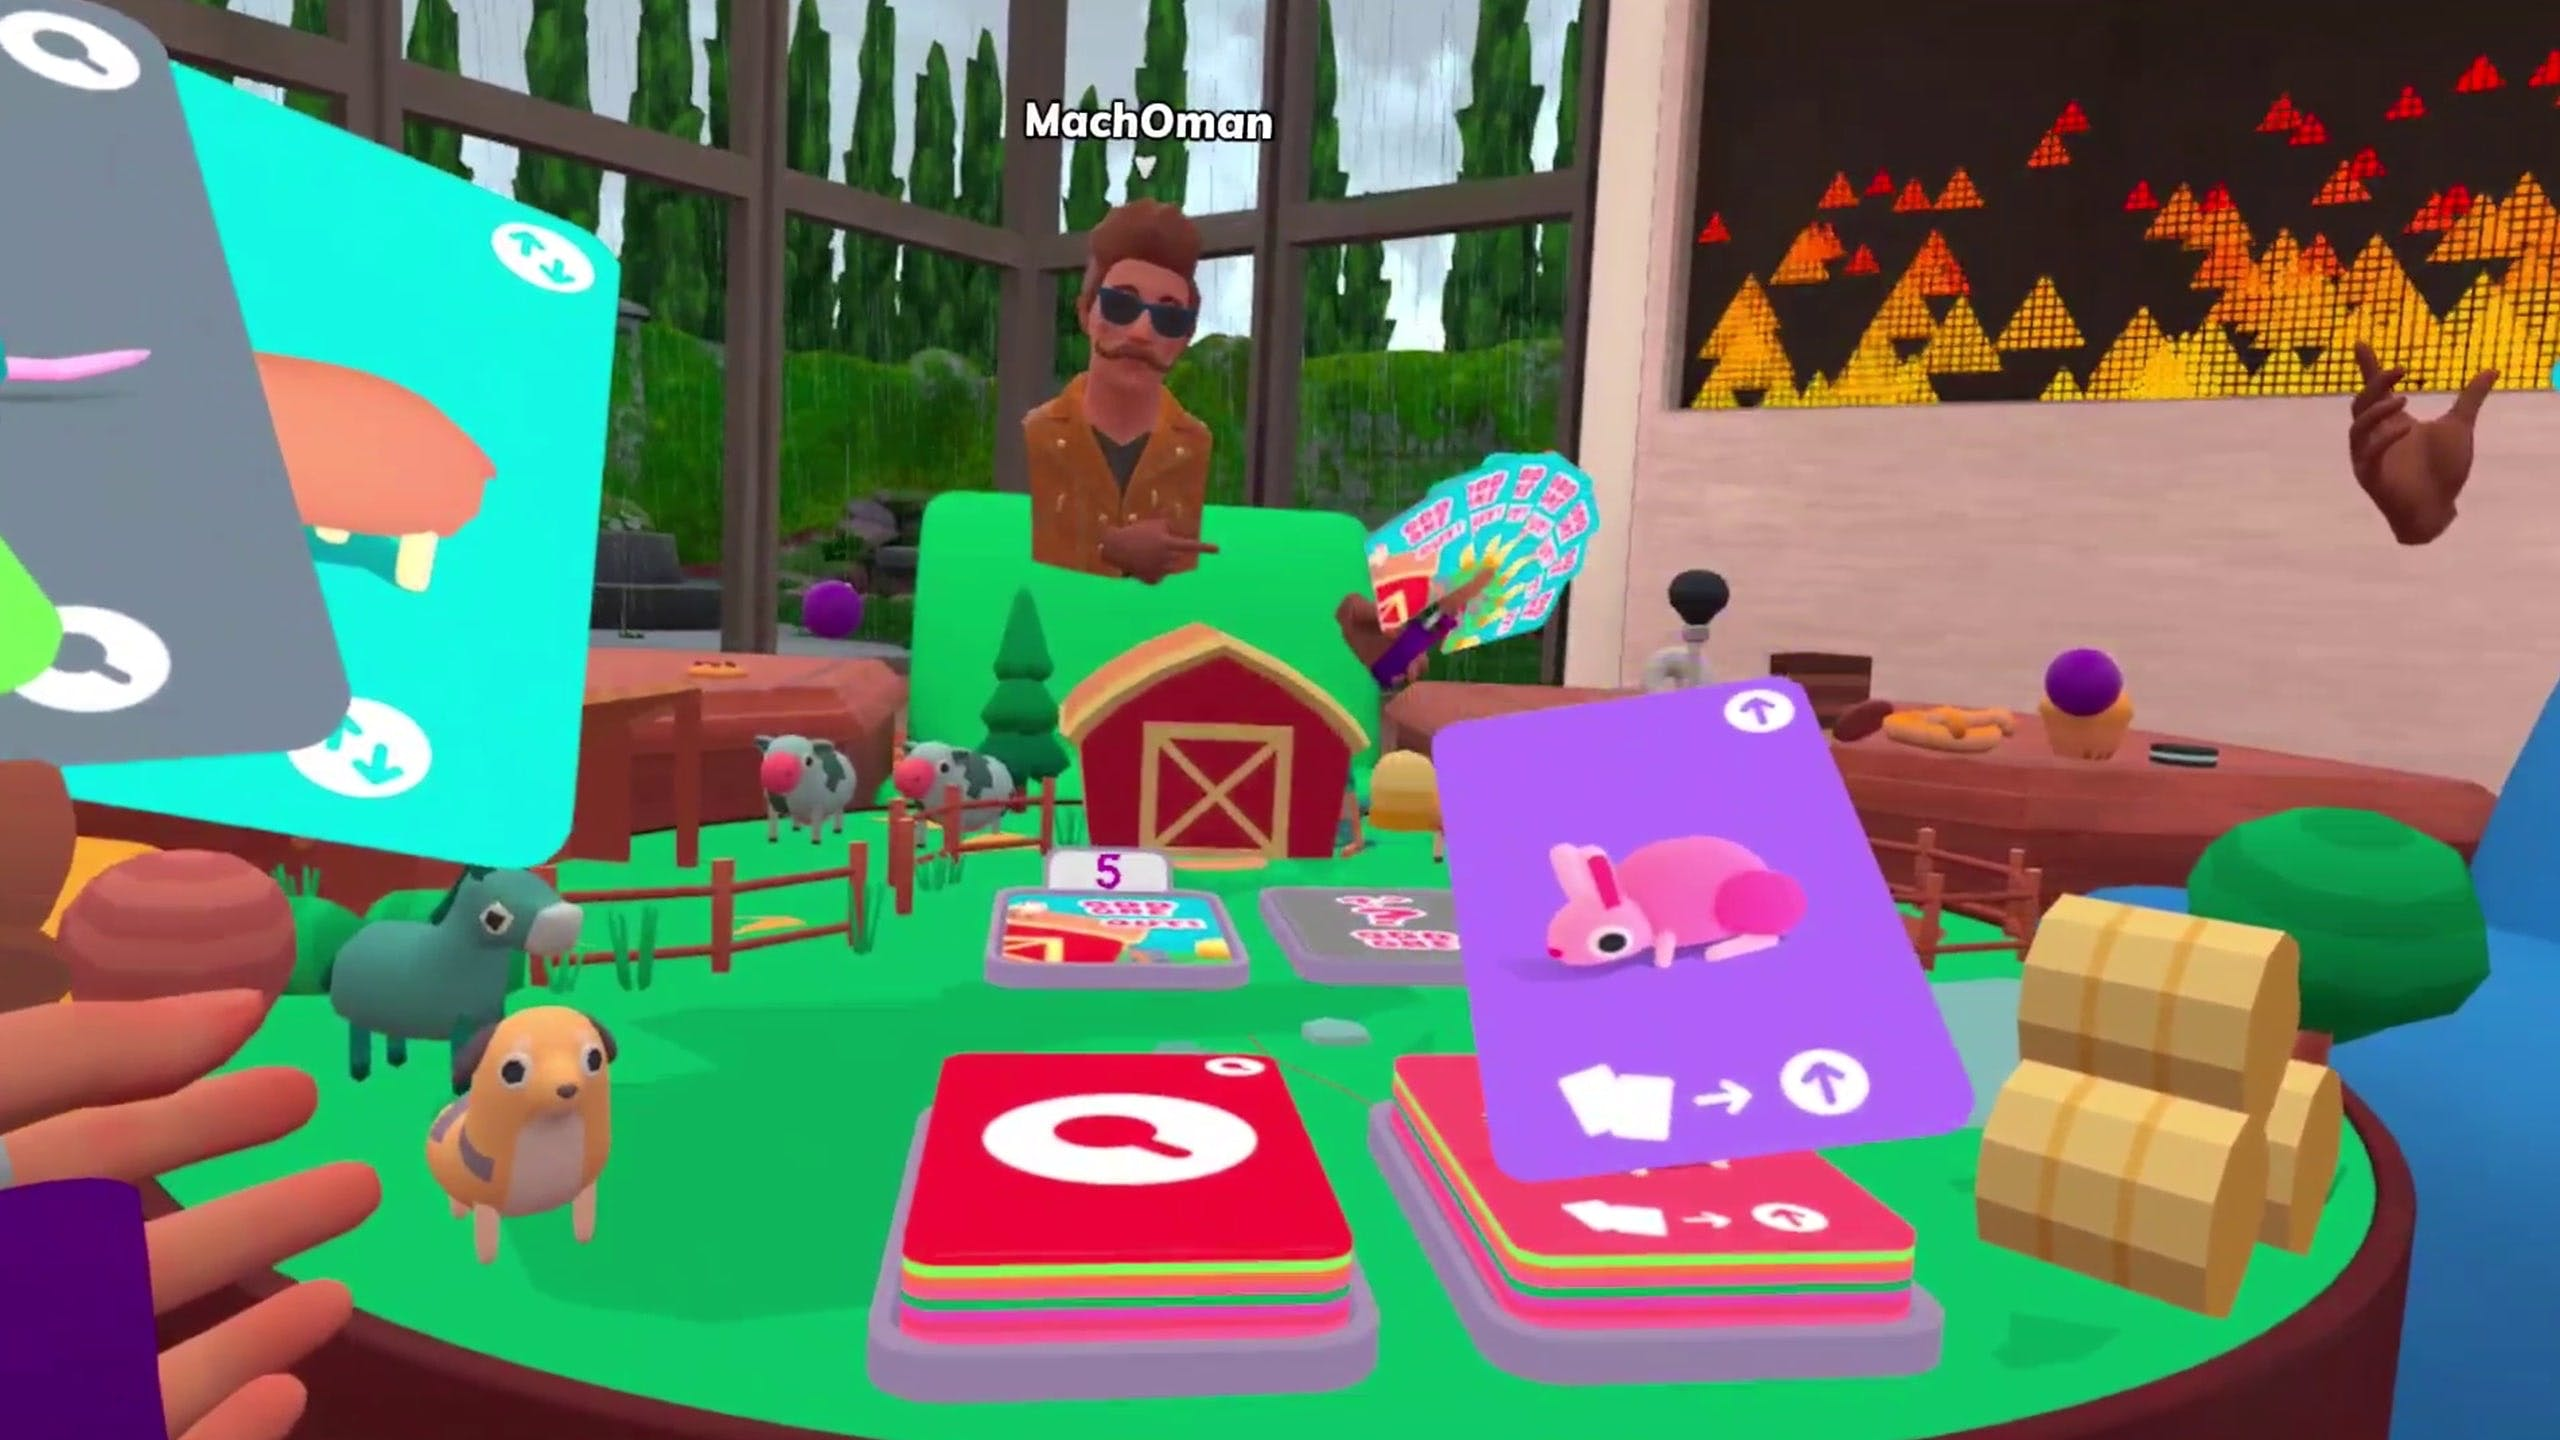 Cartoonish virtual reality with two players holding cards at a table covered in a tiny farm with animals